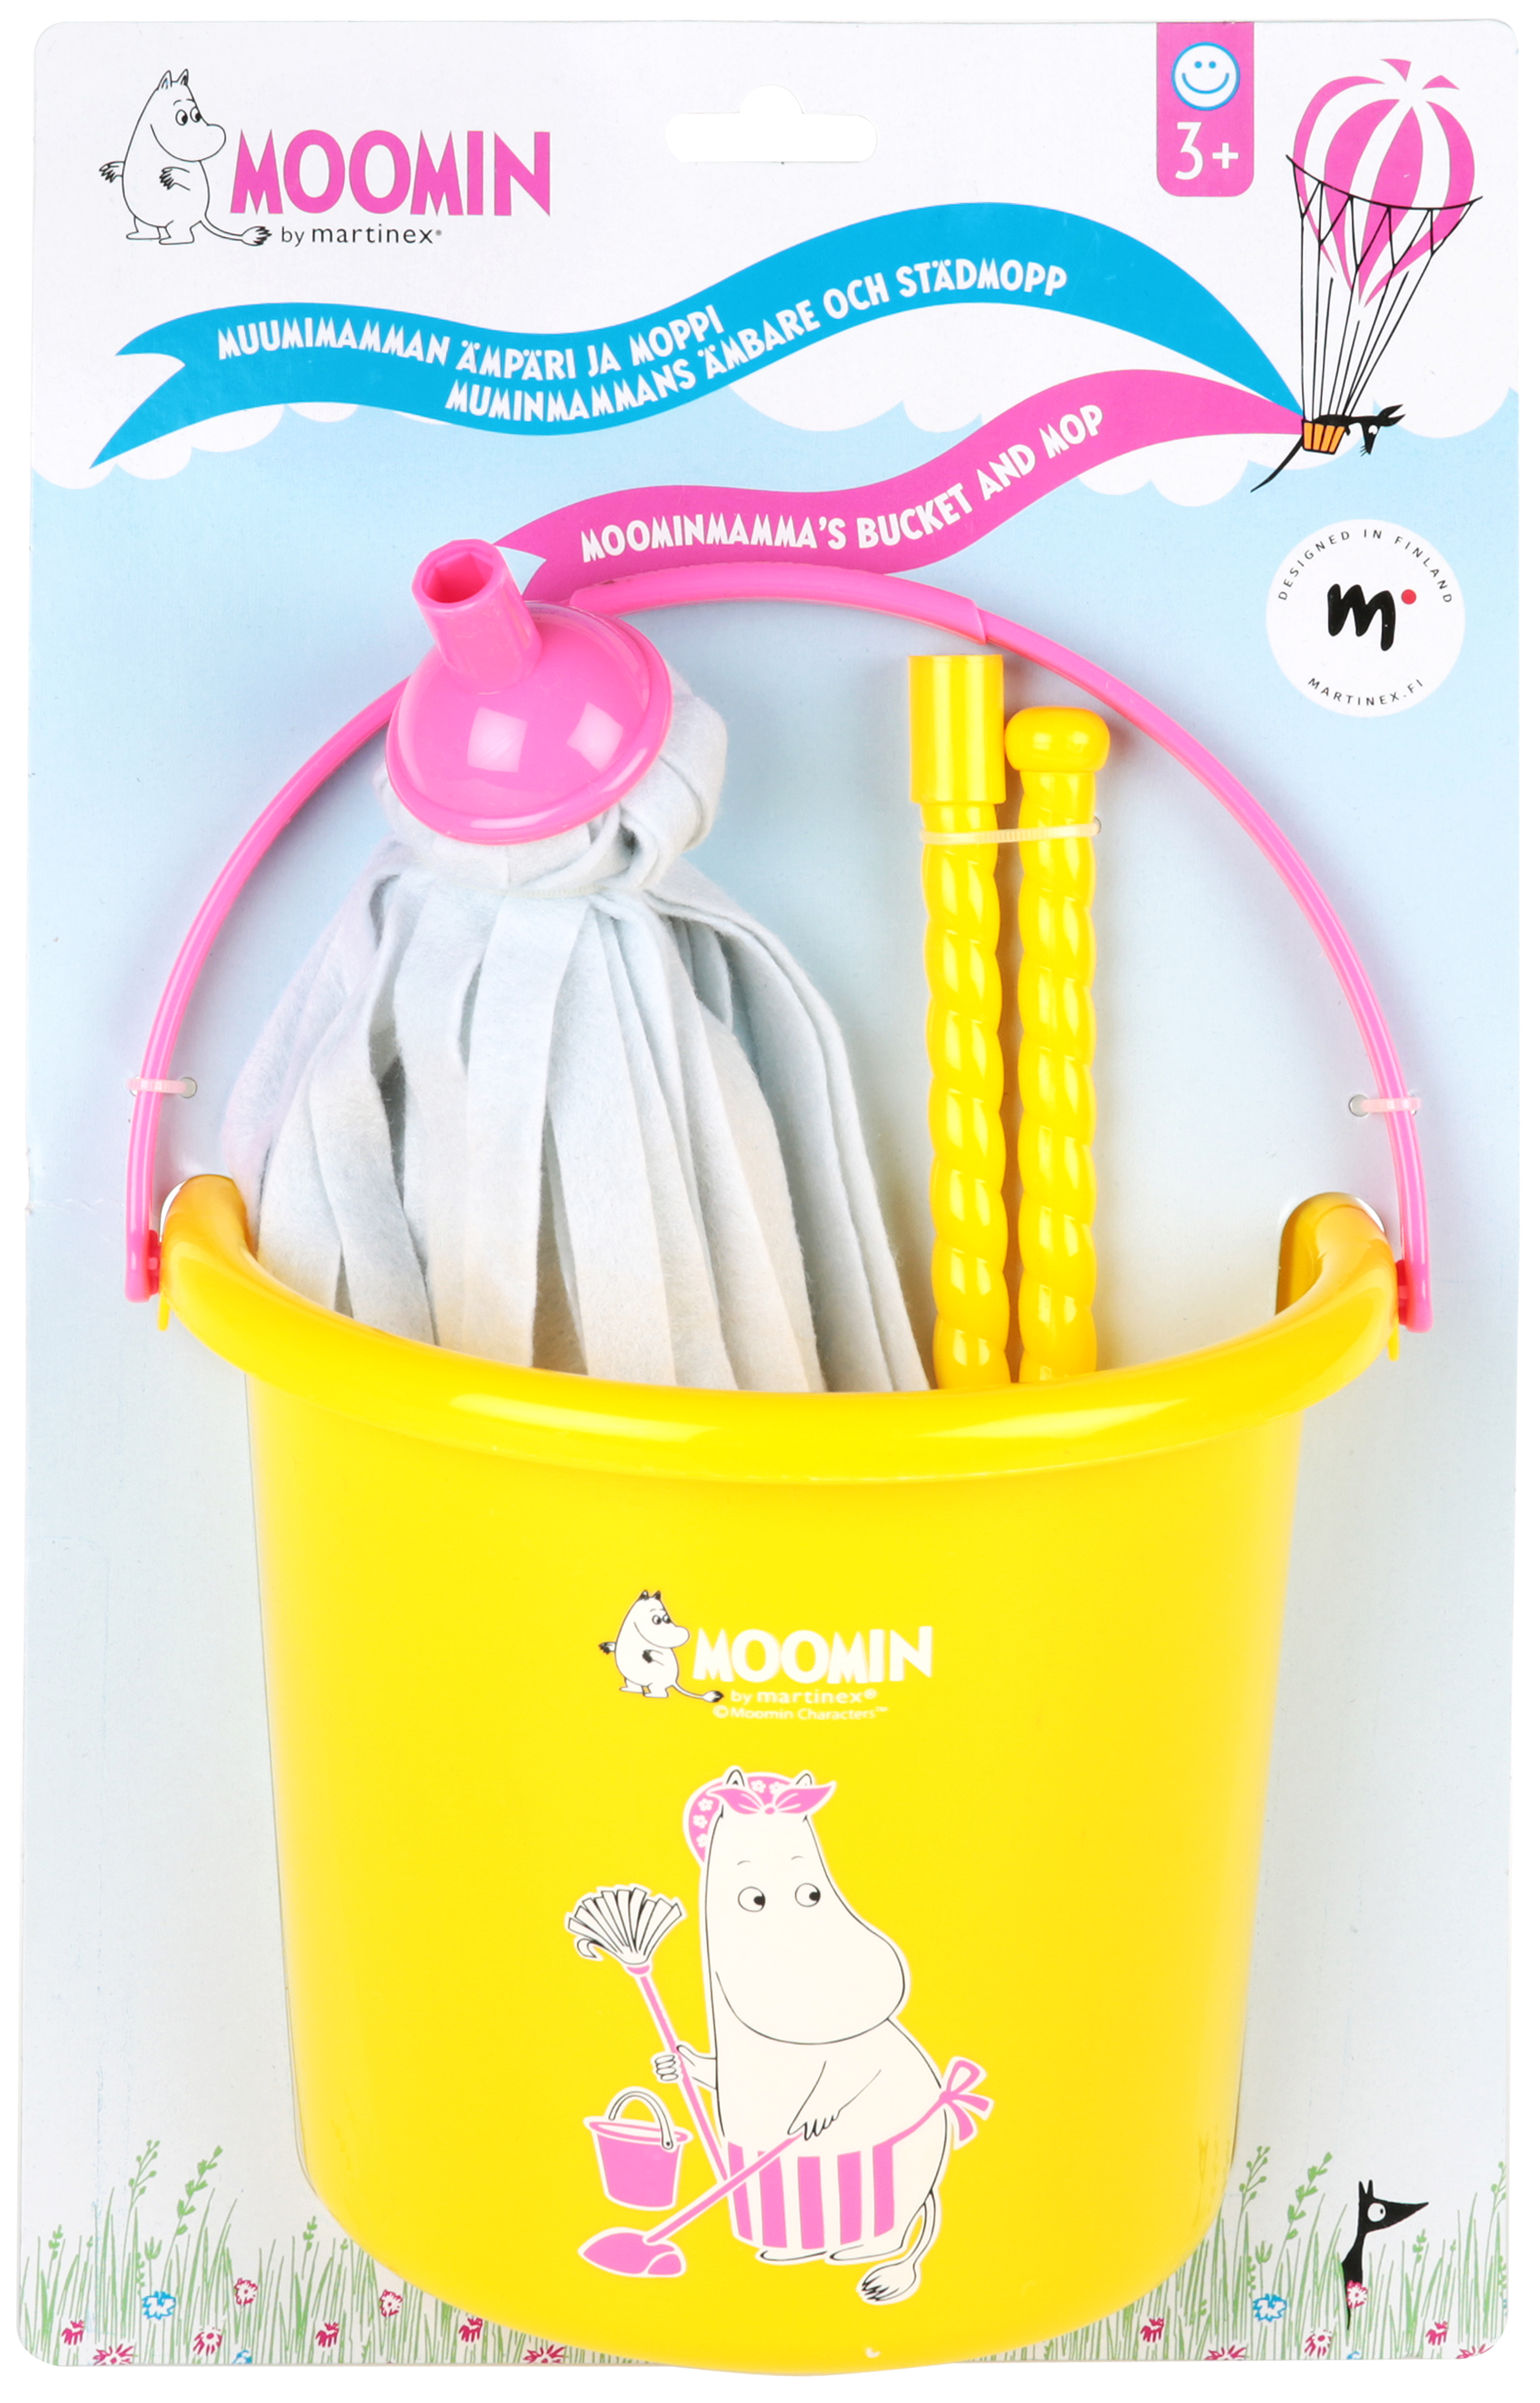 Martinex Moominmammas Bucket And Mop